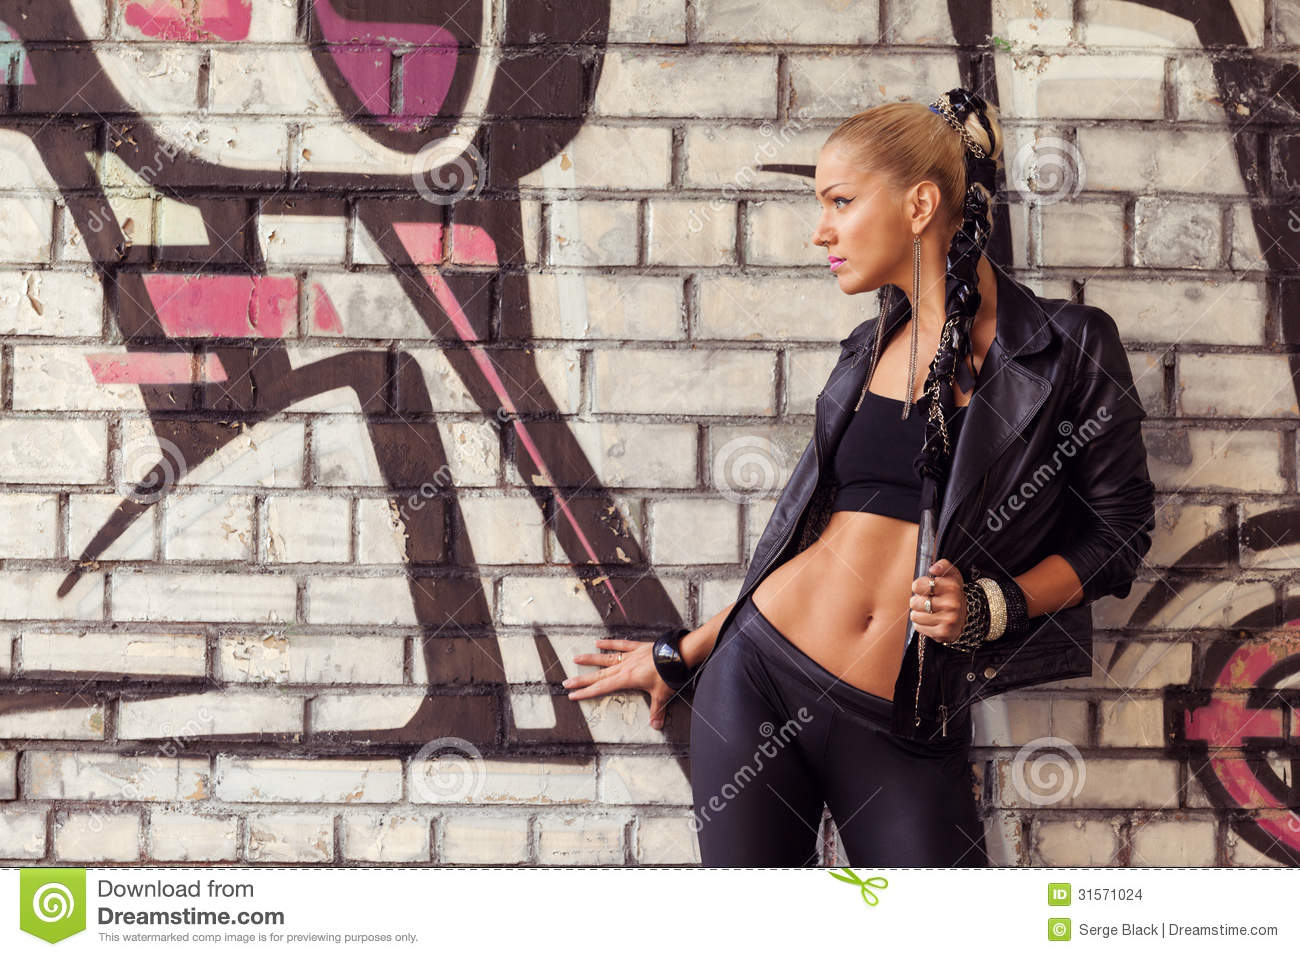 Fashion Model In Glam Rock Style On Street Stock Photo